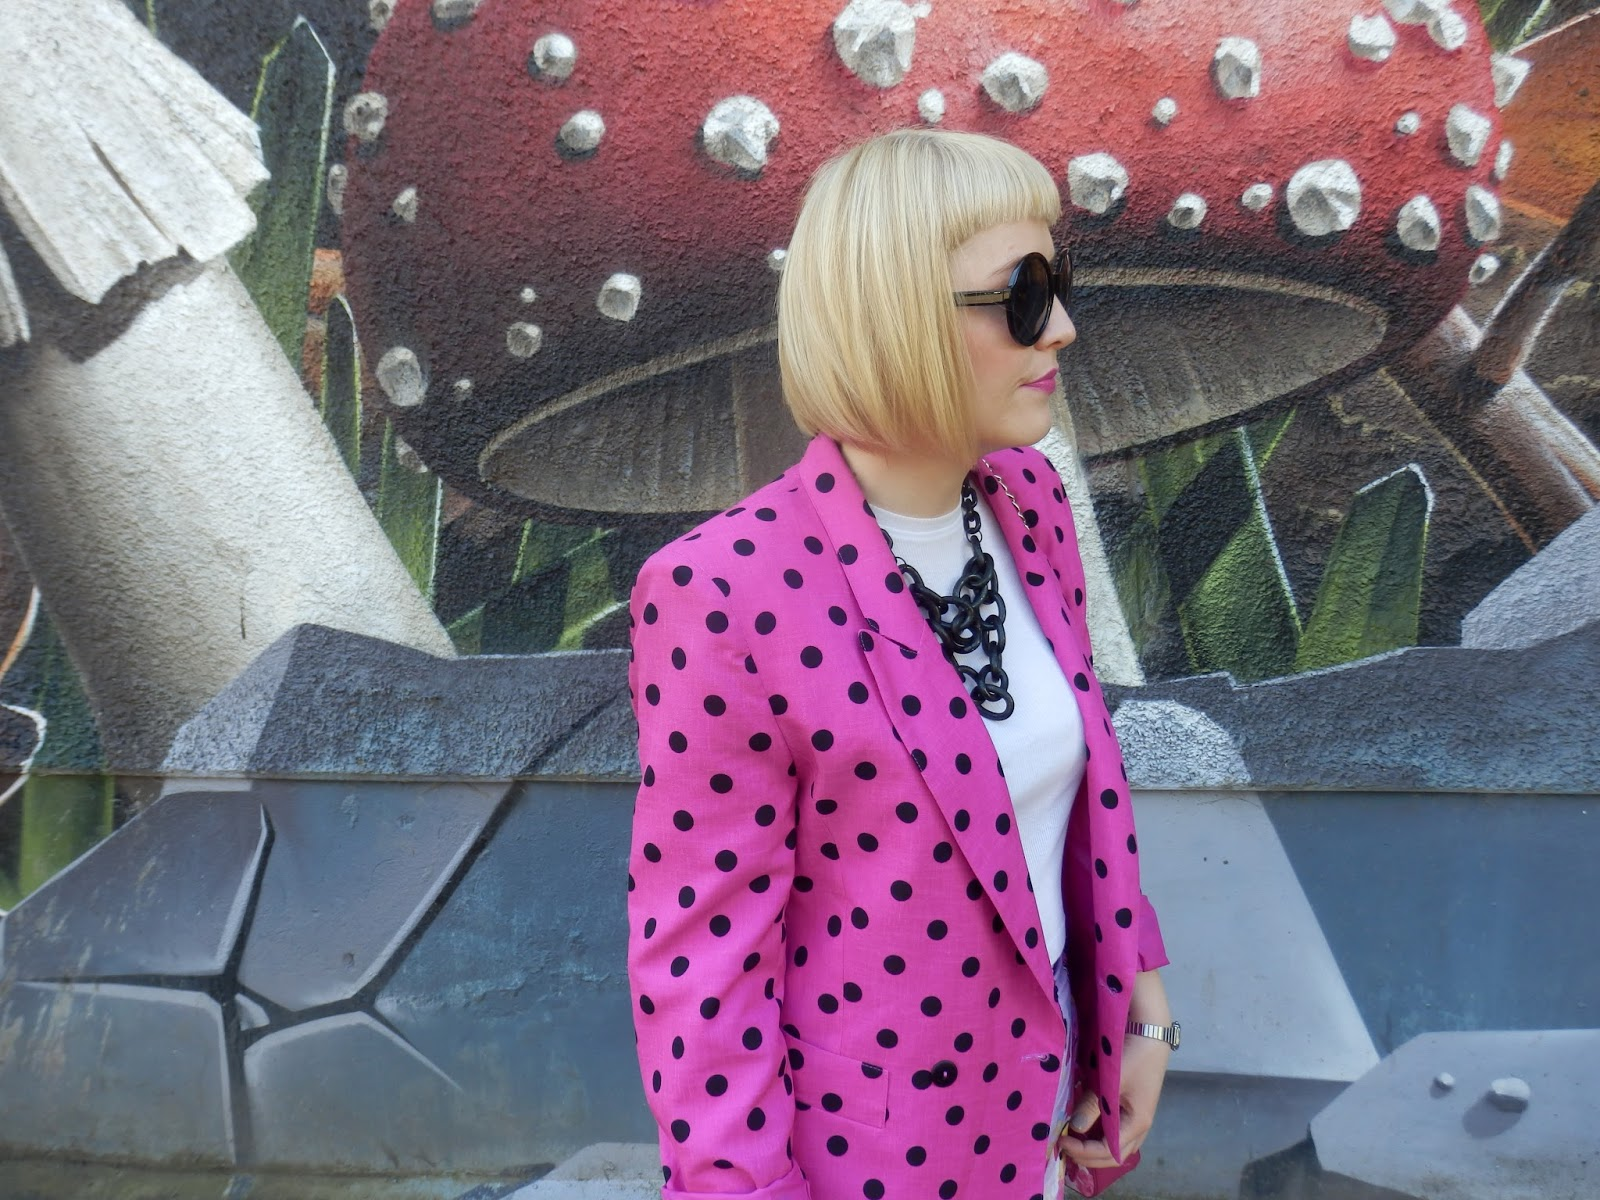 Glasgowfashiongirl - Dotty About Vintage